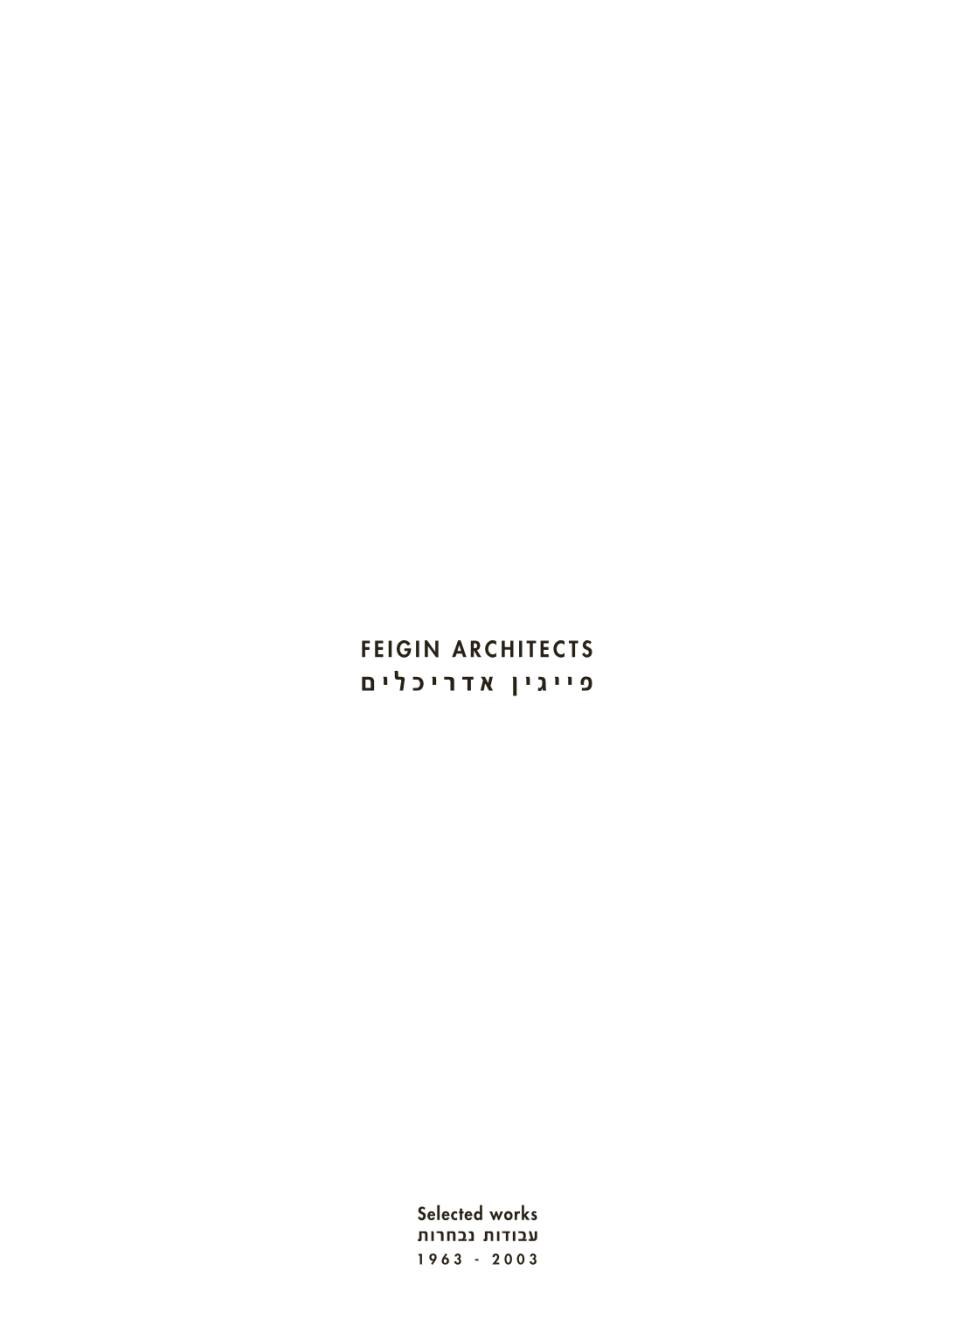 FEIGIN ARCHITECTS BOOK